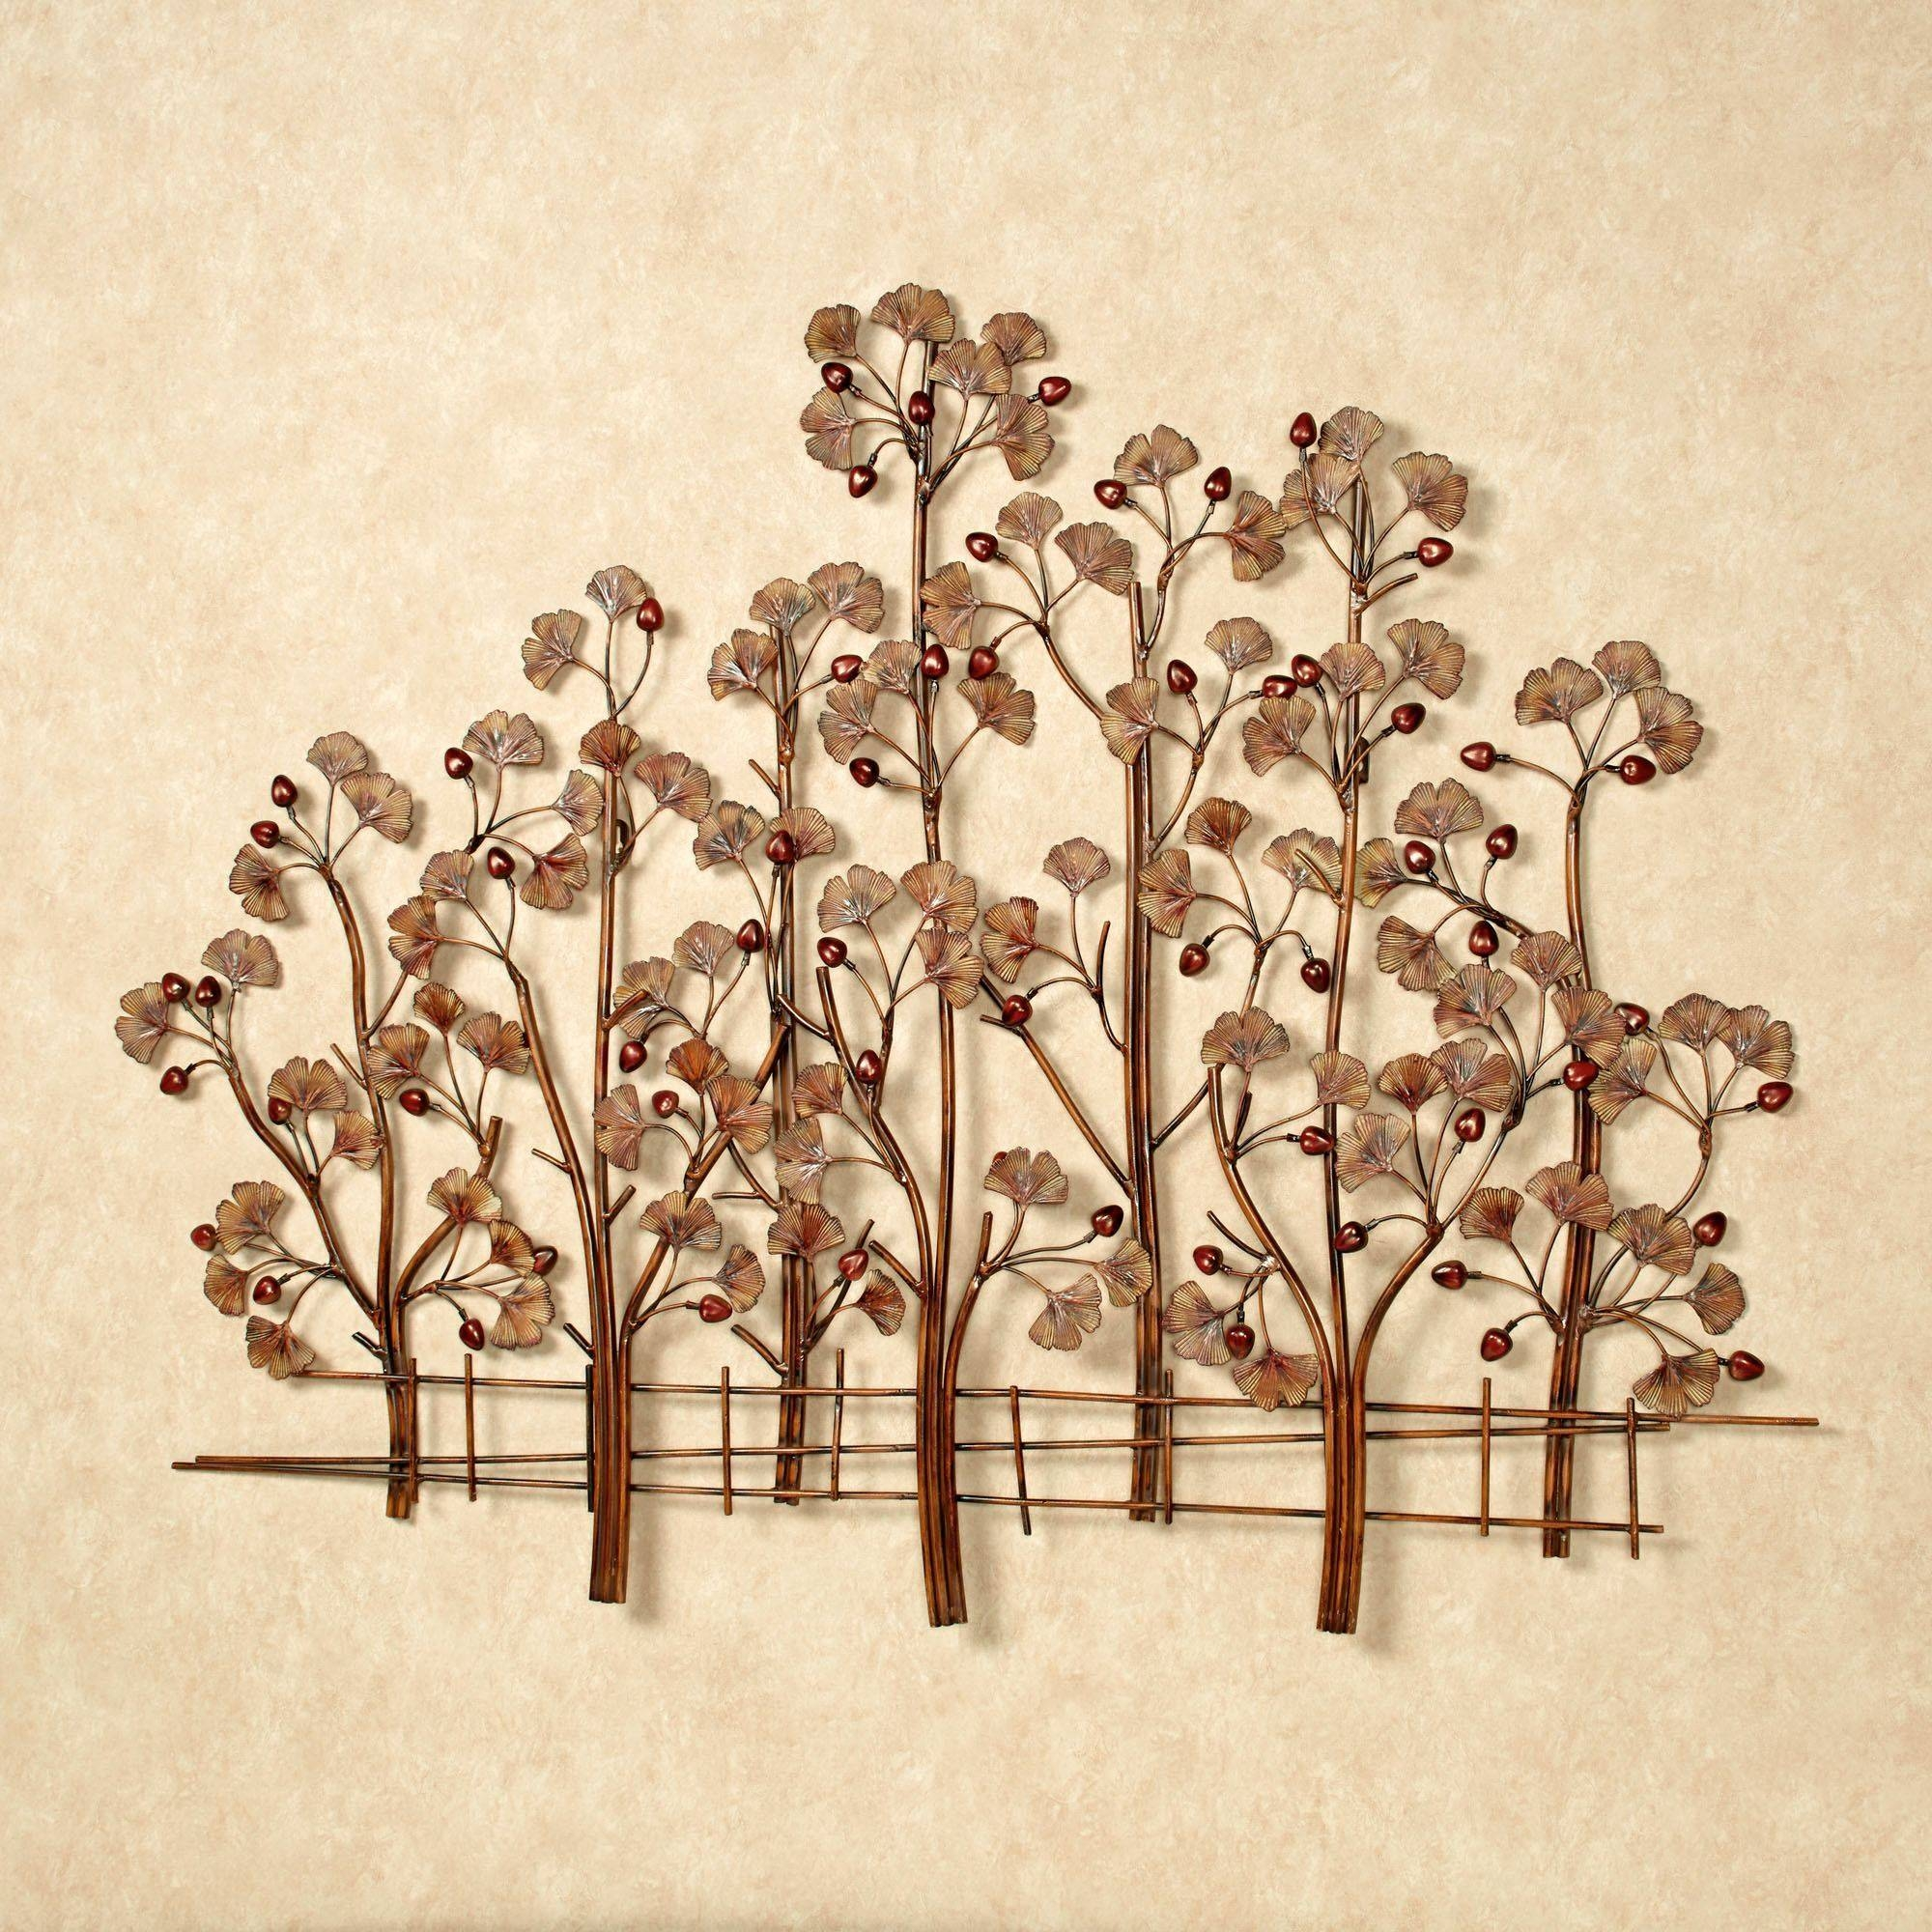 Ginkgo Tree Metal Wall Sculpture Intended For Newest Trees Metal Wall Art (View 4 of 20)